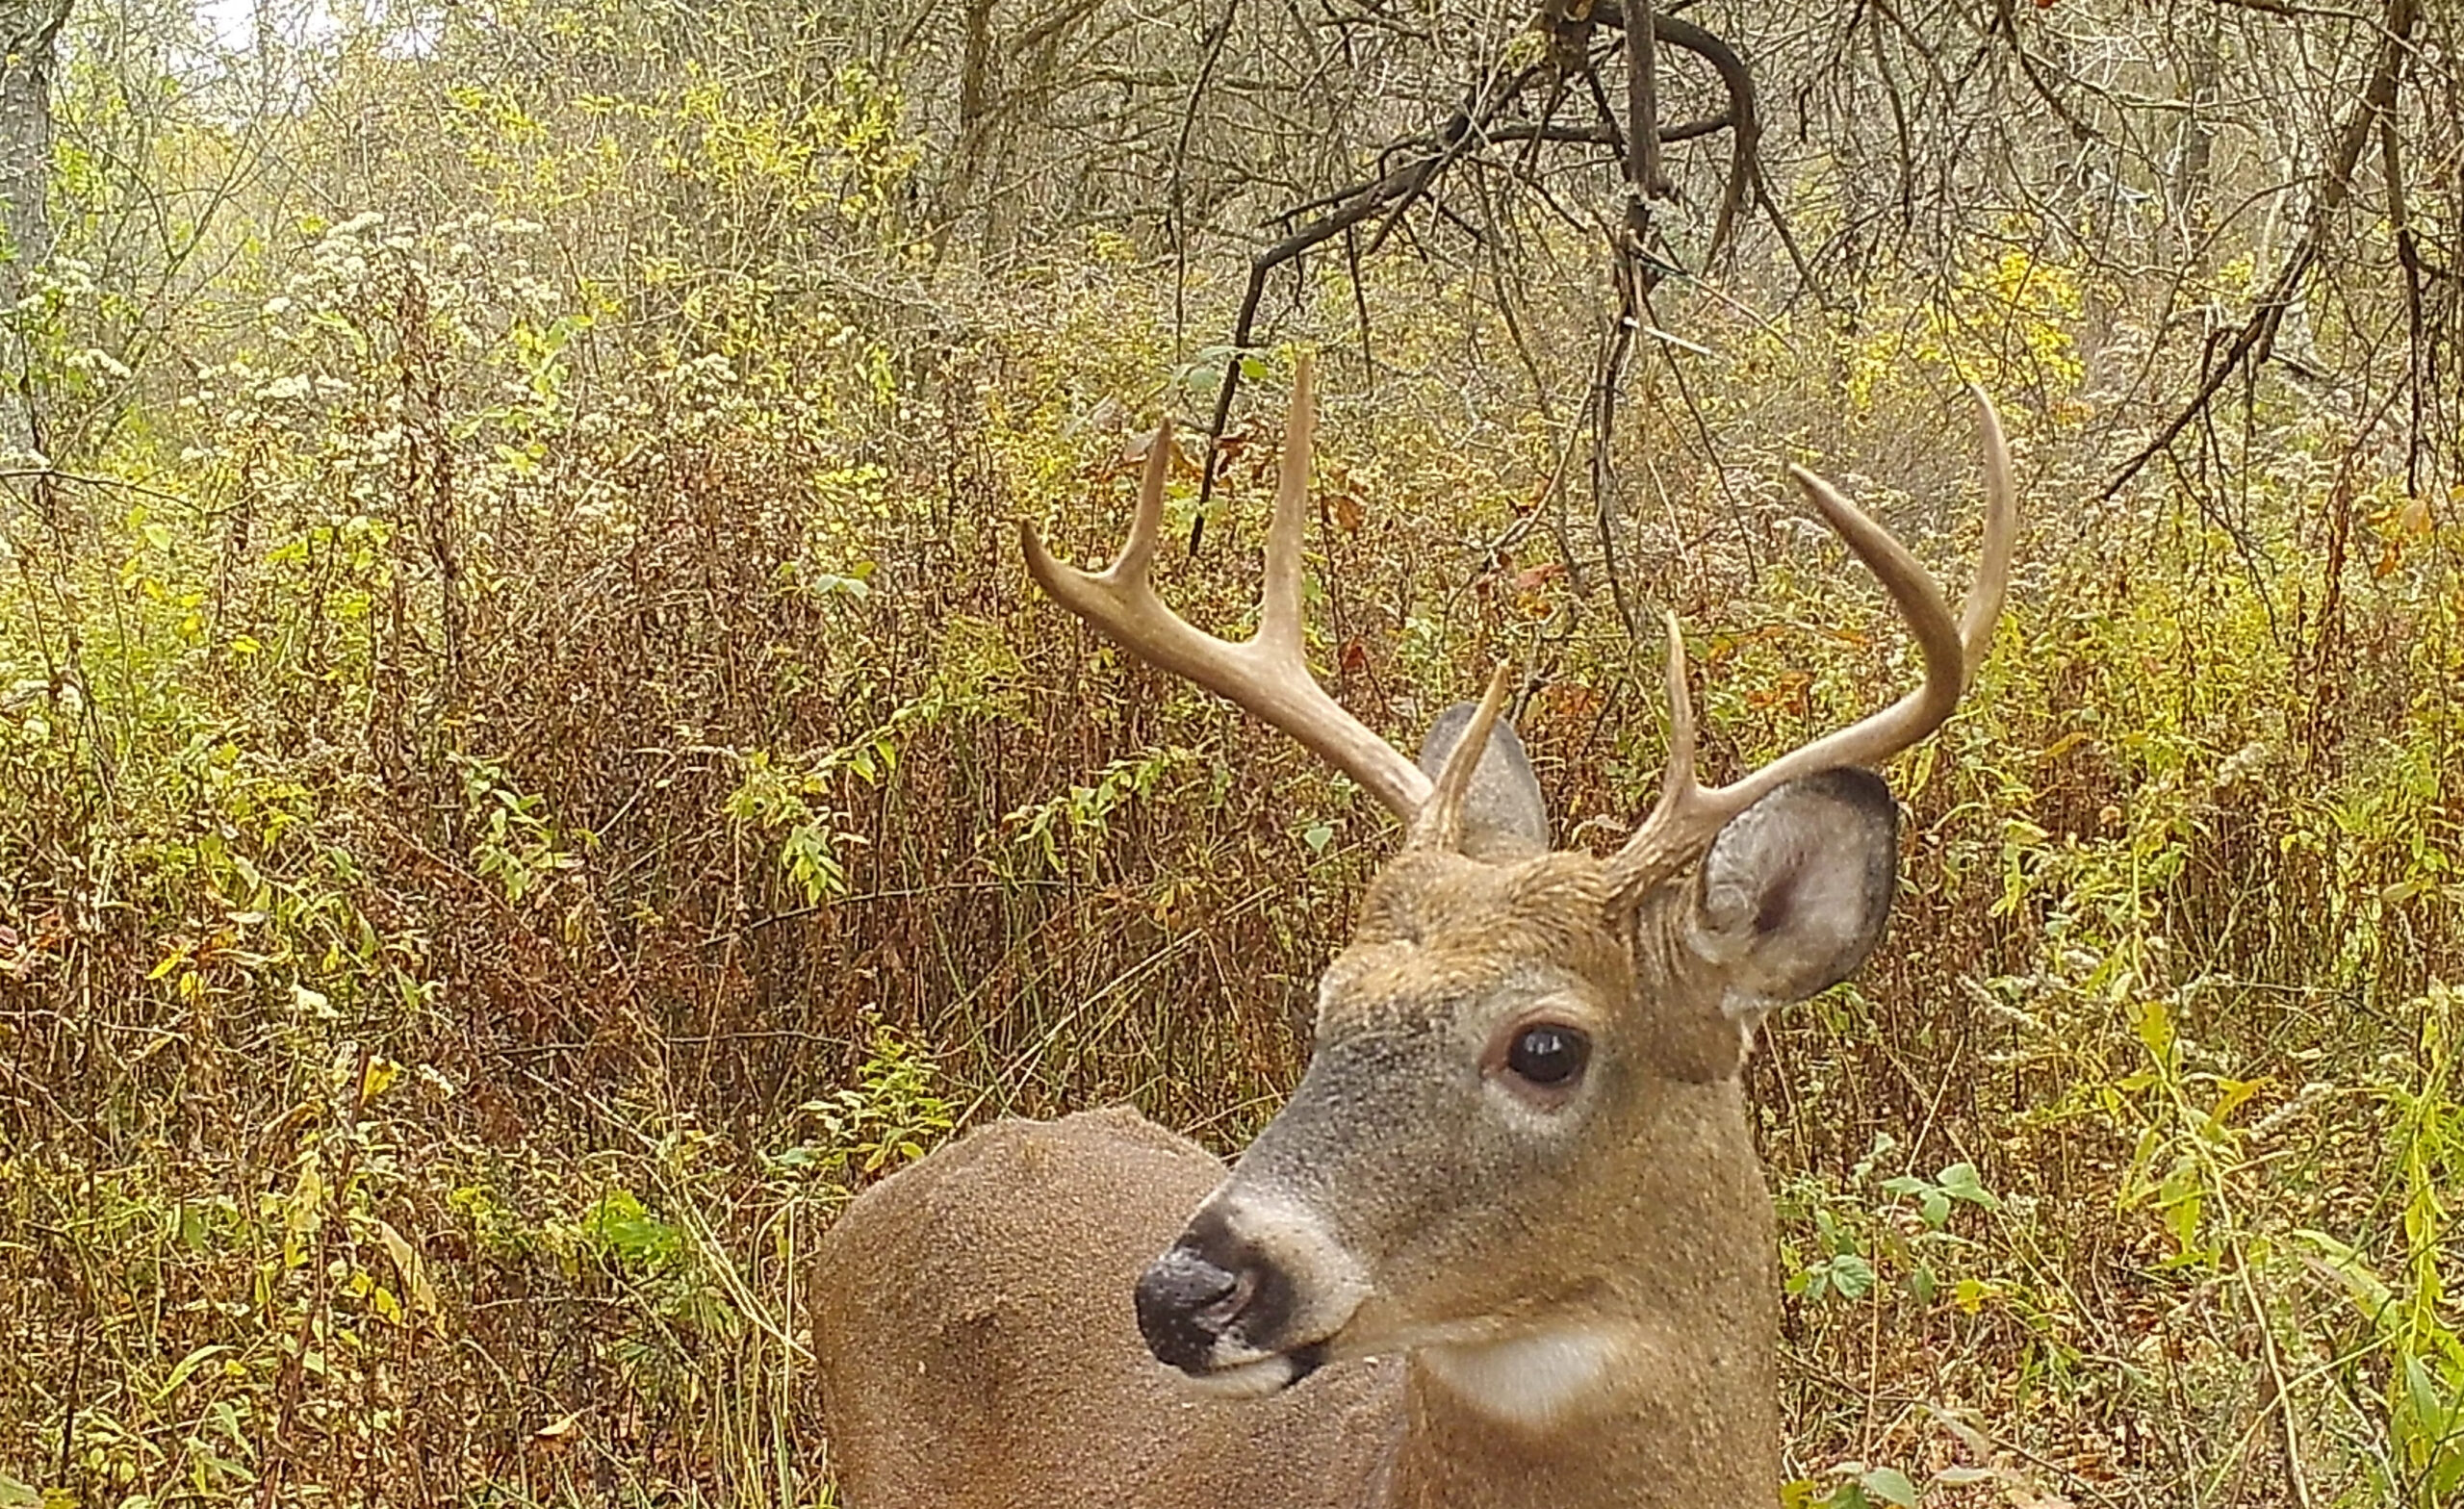 Opening Day Of Deer Season Is Going To Be Exciting, But Different